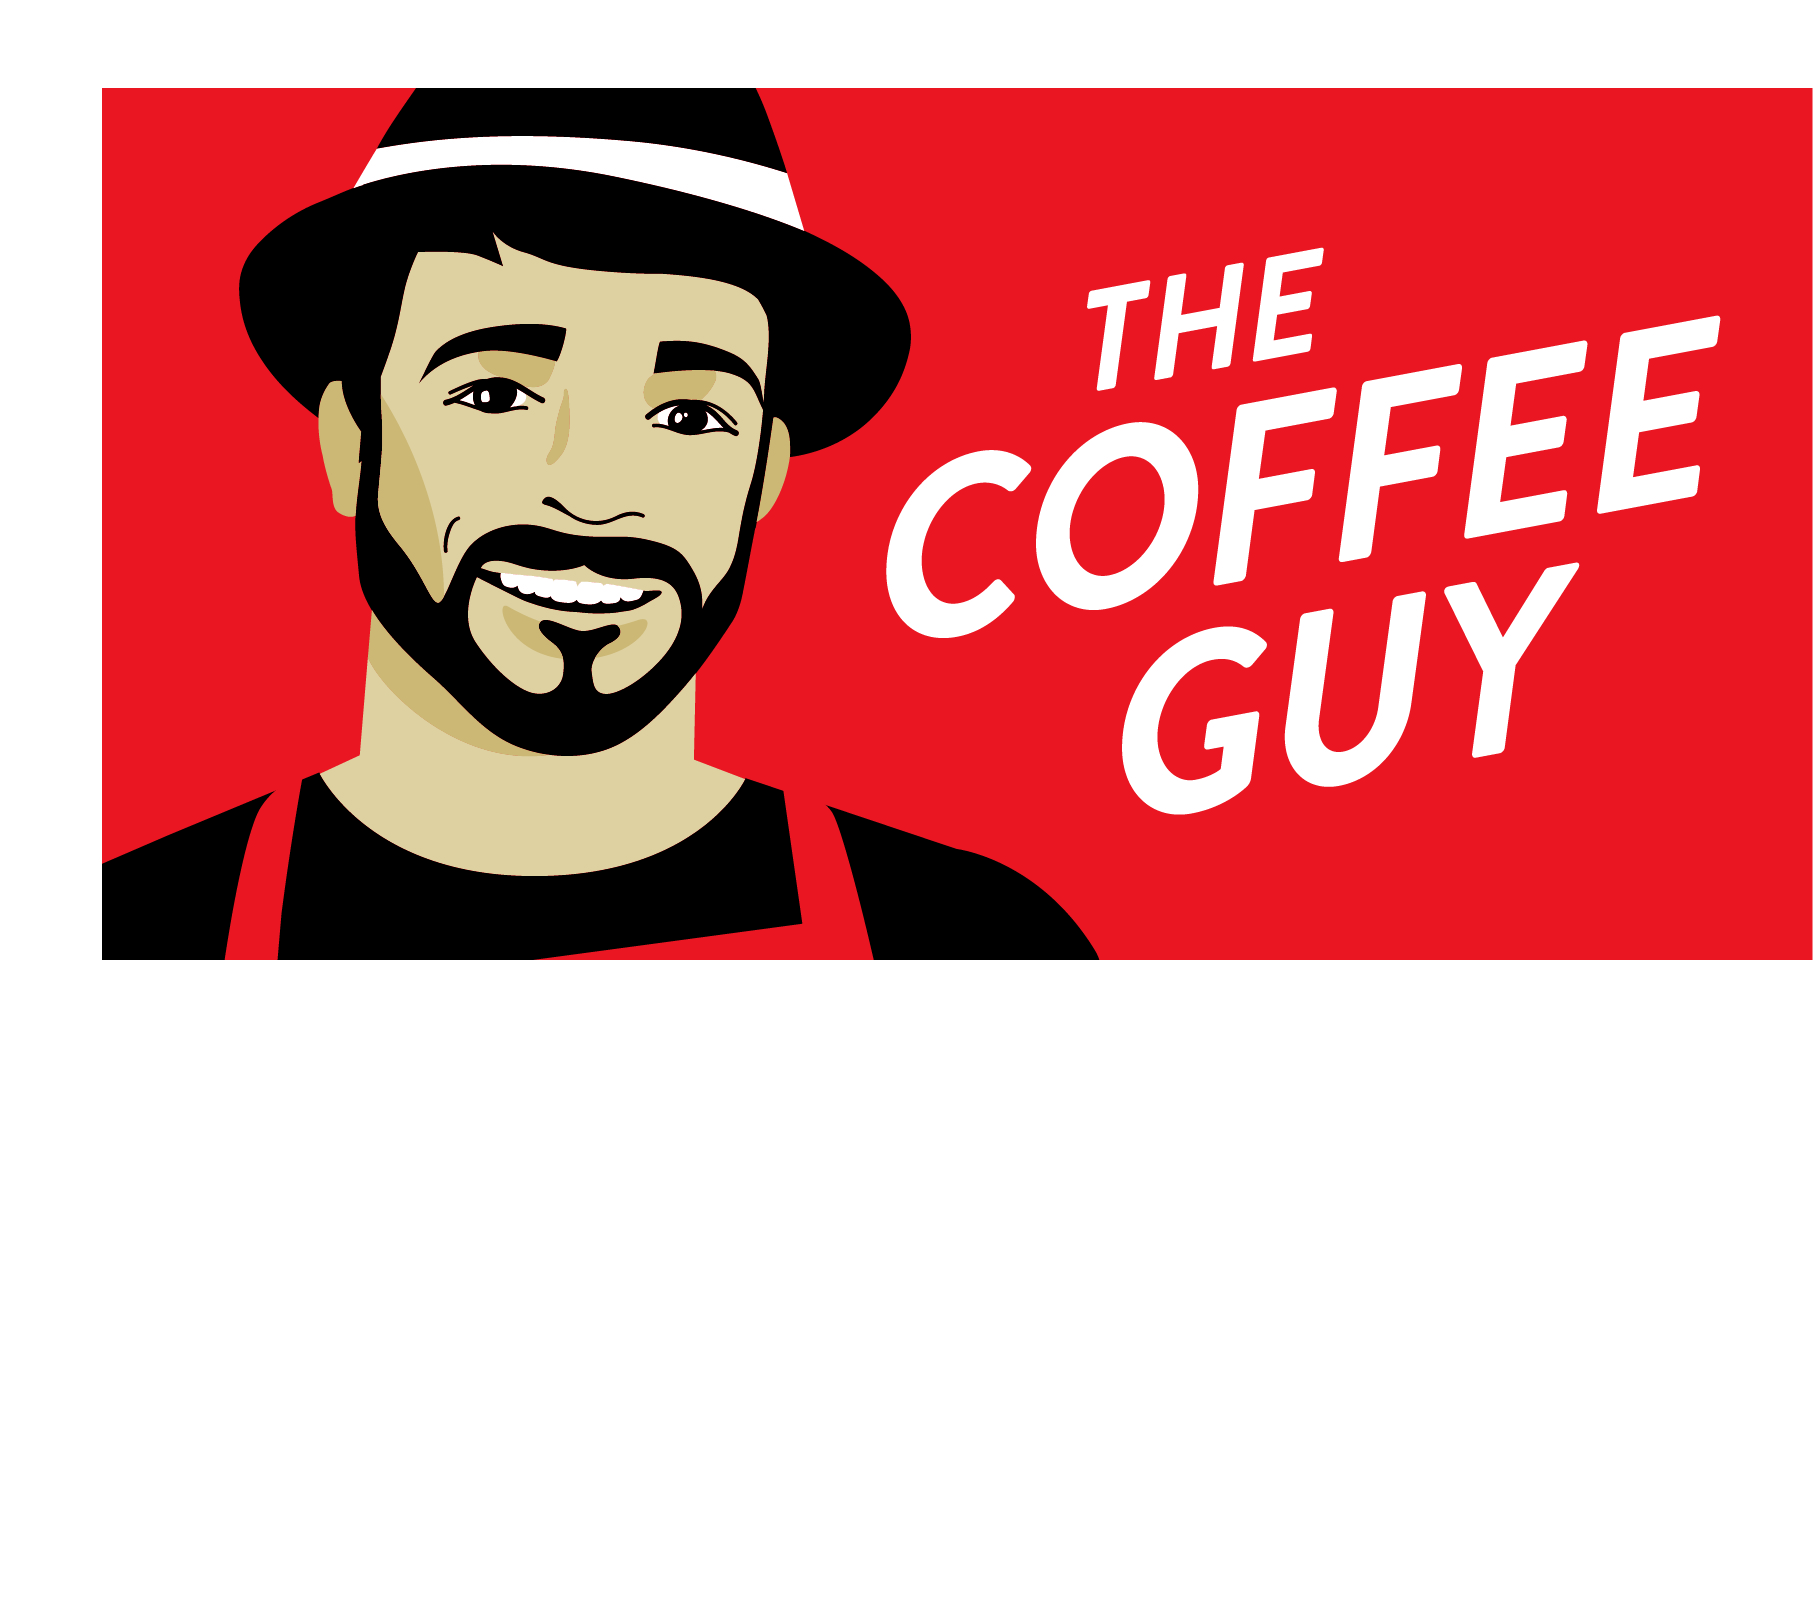 Be That Coffee Guy! NEW Coffee Guy mobile franchise available in QLD!